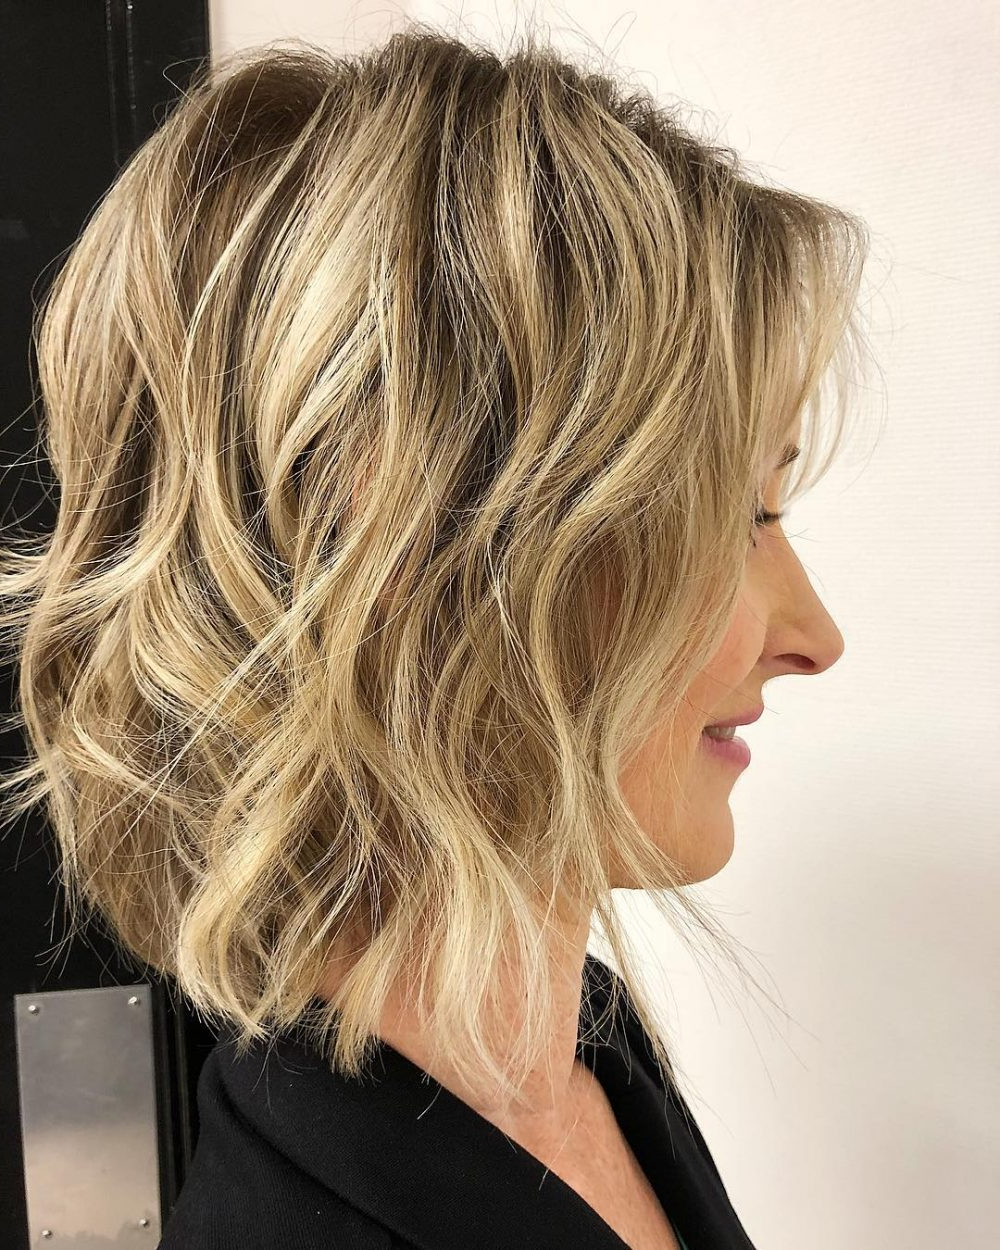 43 Perfect Short Hairstyles For Fine Hair In 2018 For Short Layered Hairstyles For Fine Hair Over  (View 18 of 25)